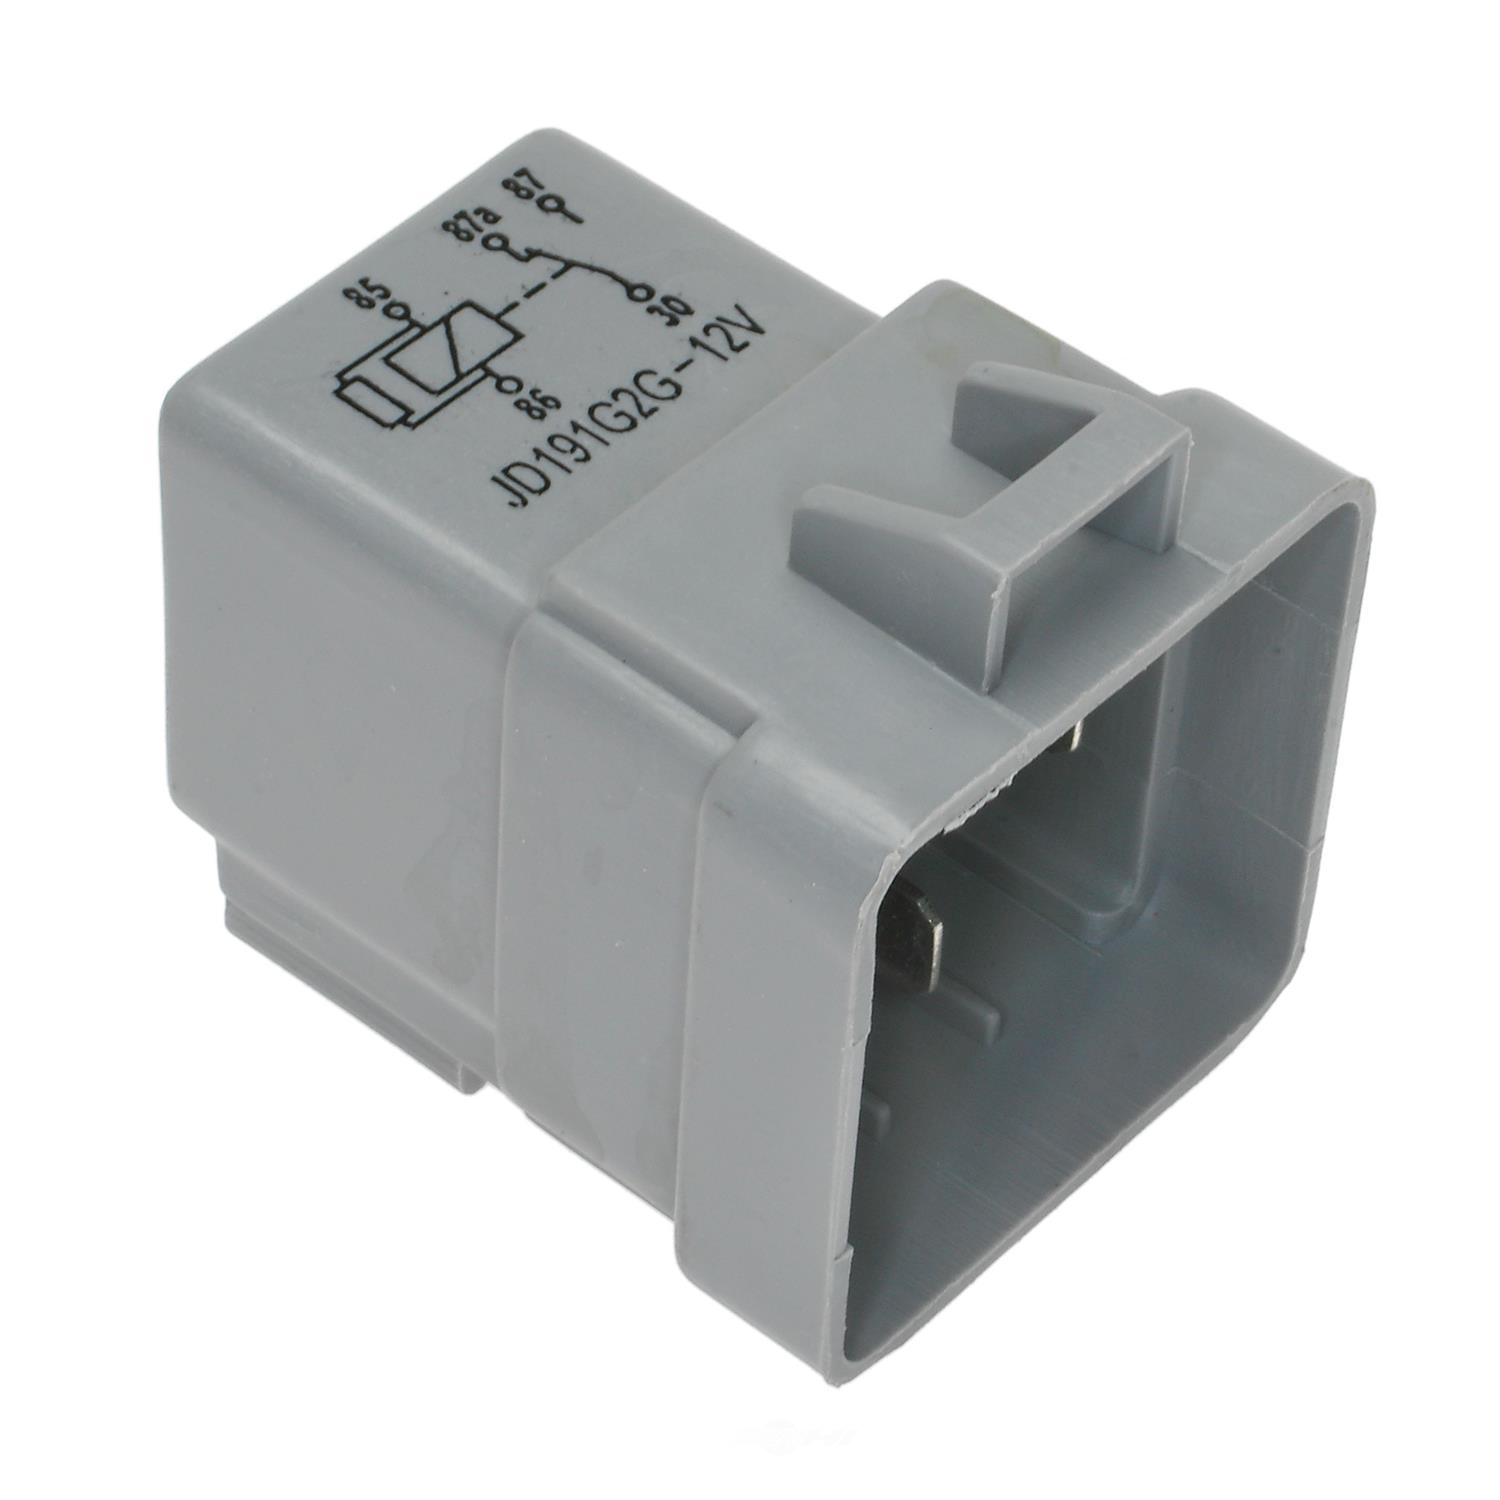 STANDARD T-SERIES - Electronic Brake Control Relay - STT RY241T